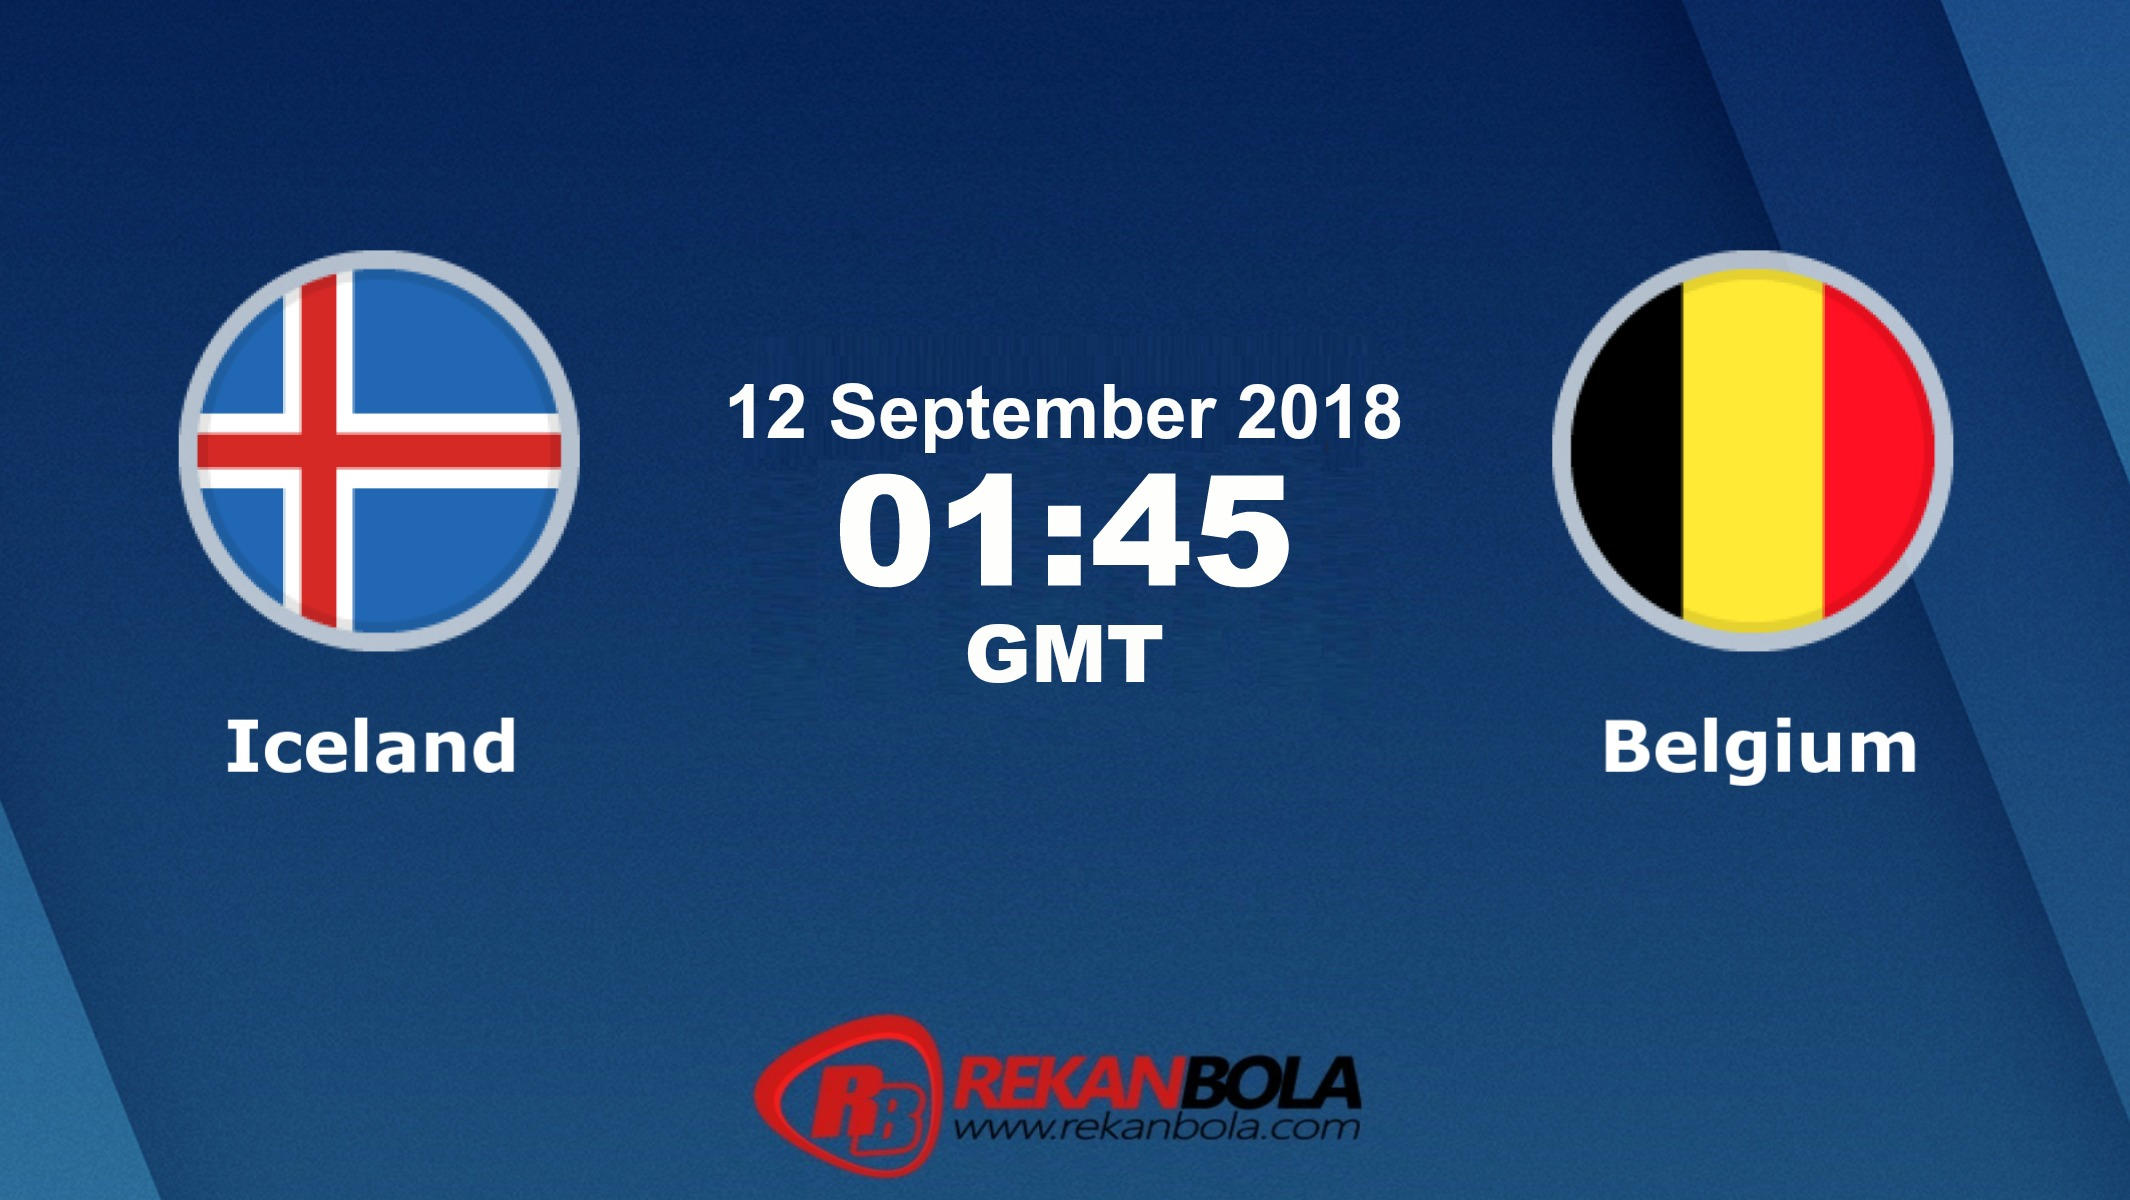 Nonton Siaran Live Streaming Islandia Vs Belgia 12 September 2018